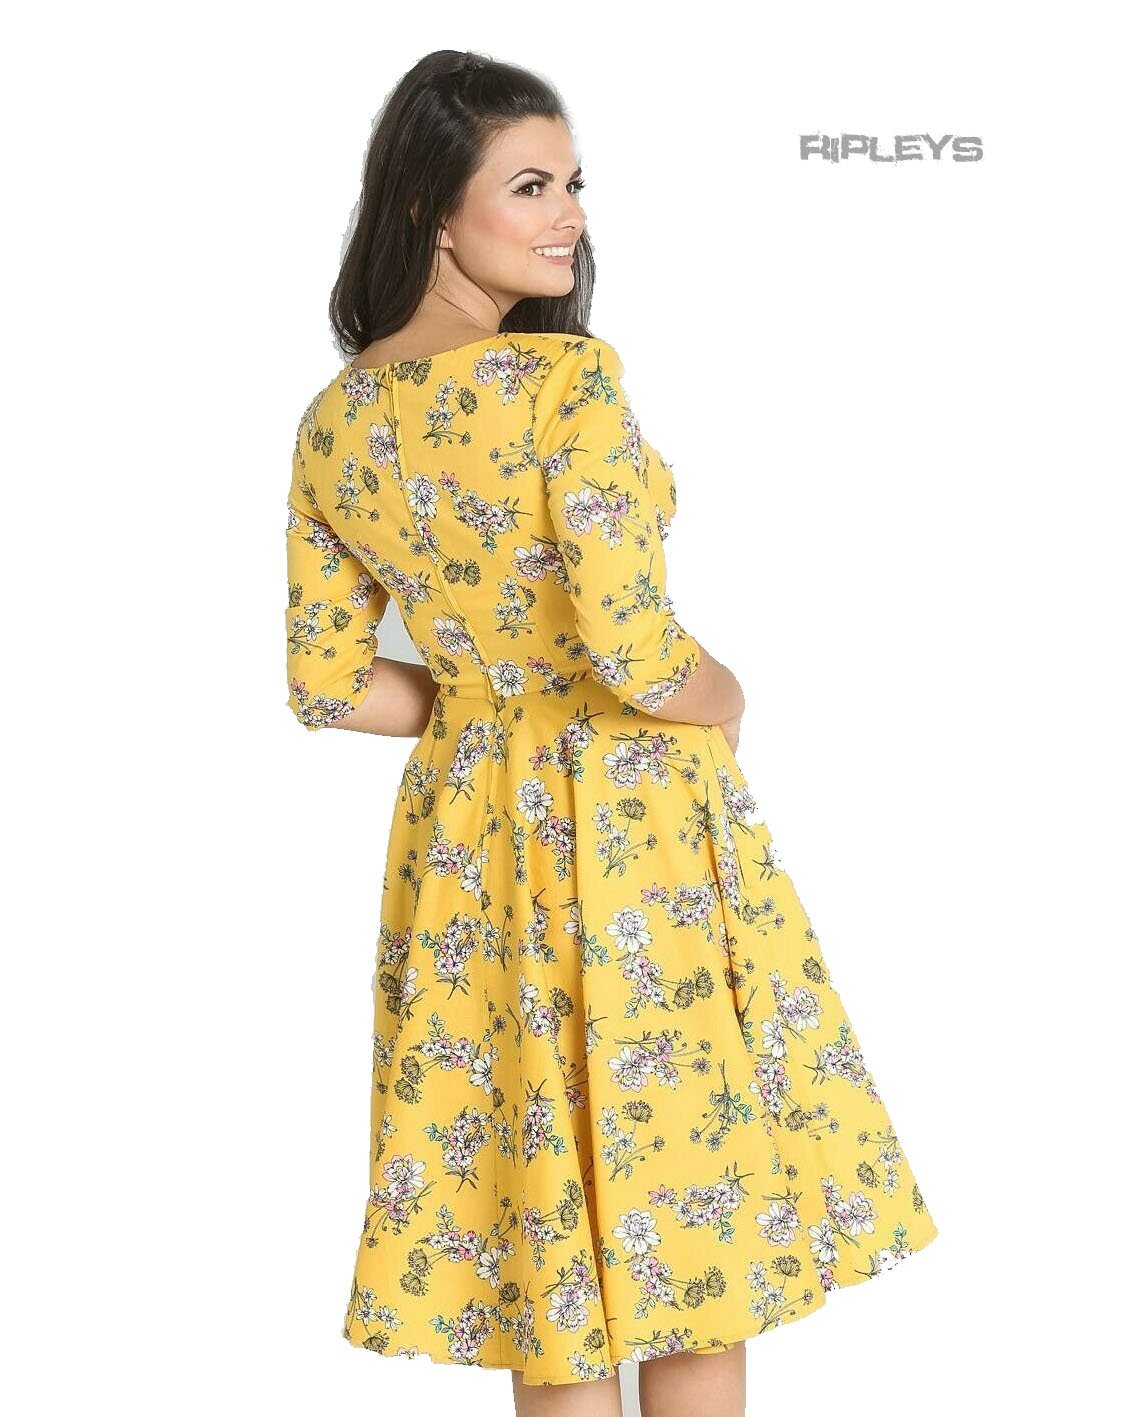 Hell-Bunny-40s-50s-Pin-Up-Vintage-Dress-MURIEL-Flowers-Yellow-All-Sizes thumbnail 20